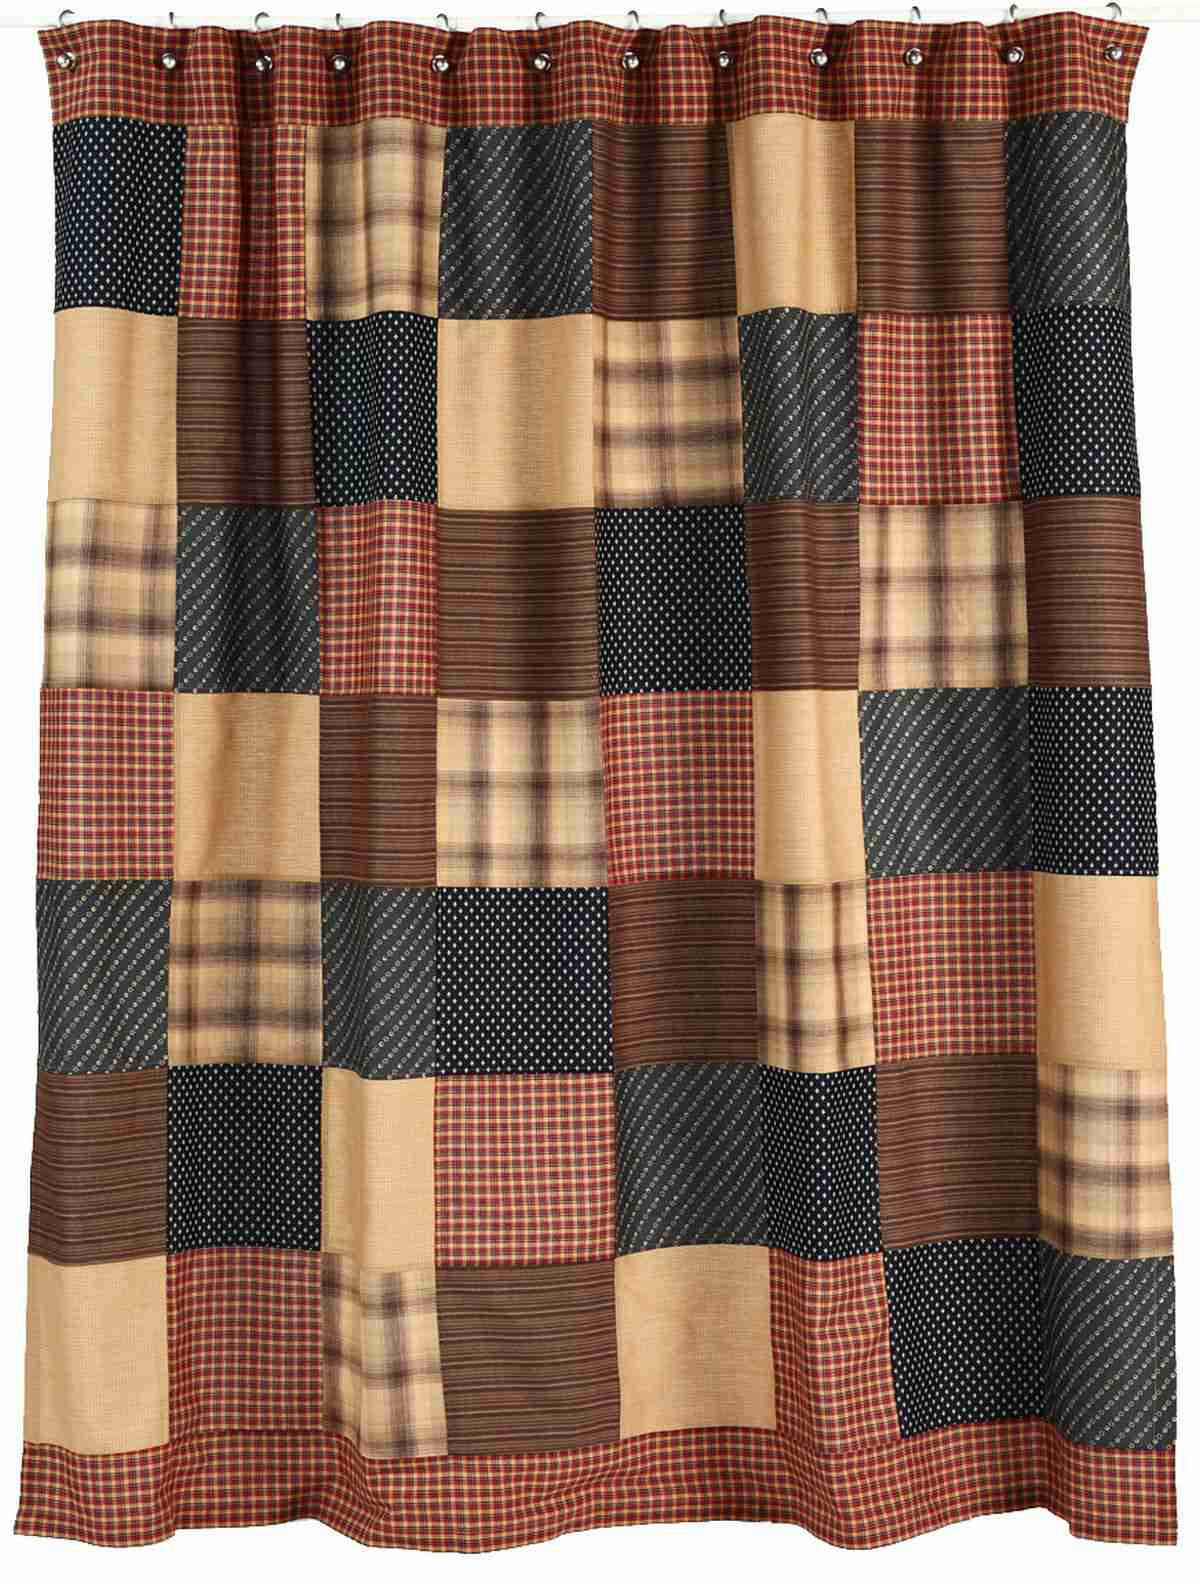 Patriotic Patch Shower Curtain Navys Red Chocolate With Tan And Black Accents Primitive